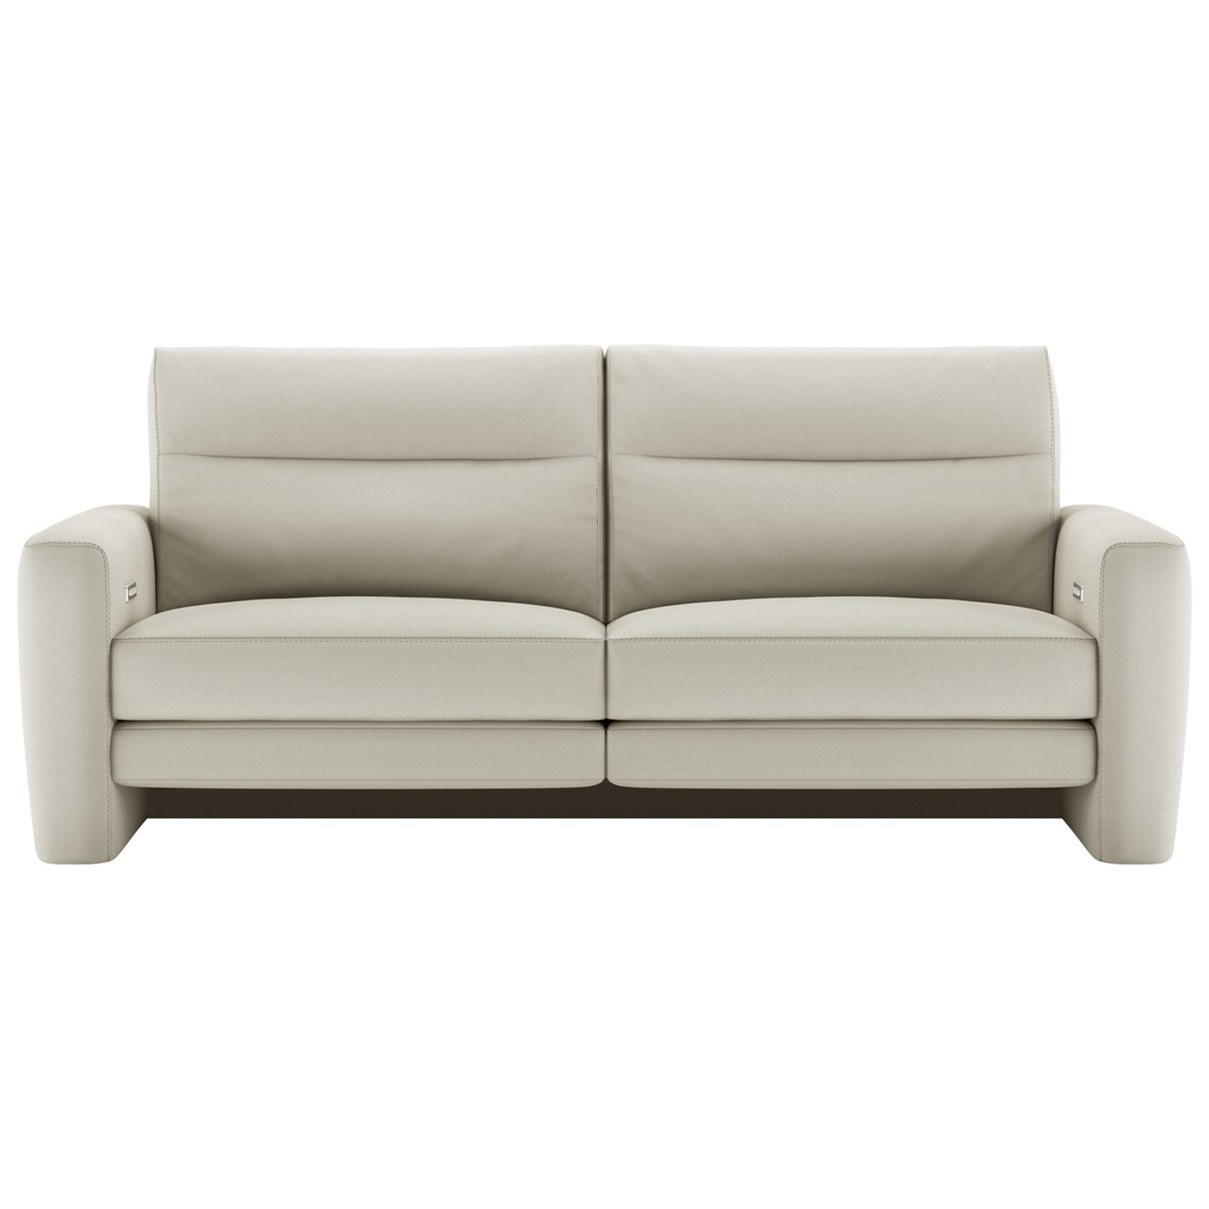 American Leather Chelsea Style In Motion Contemporary